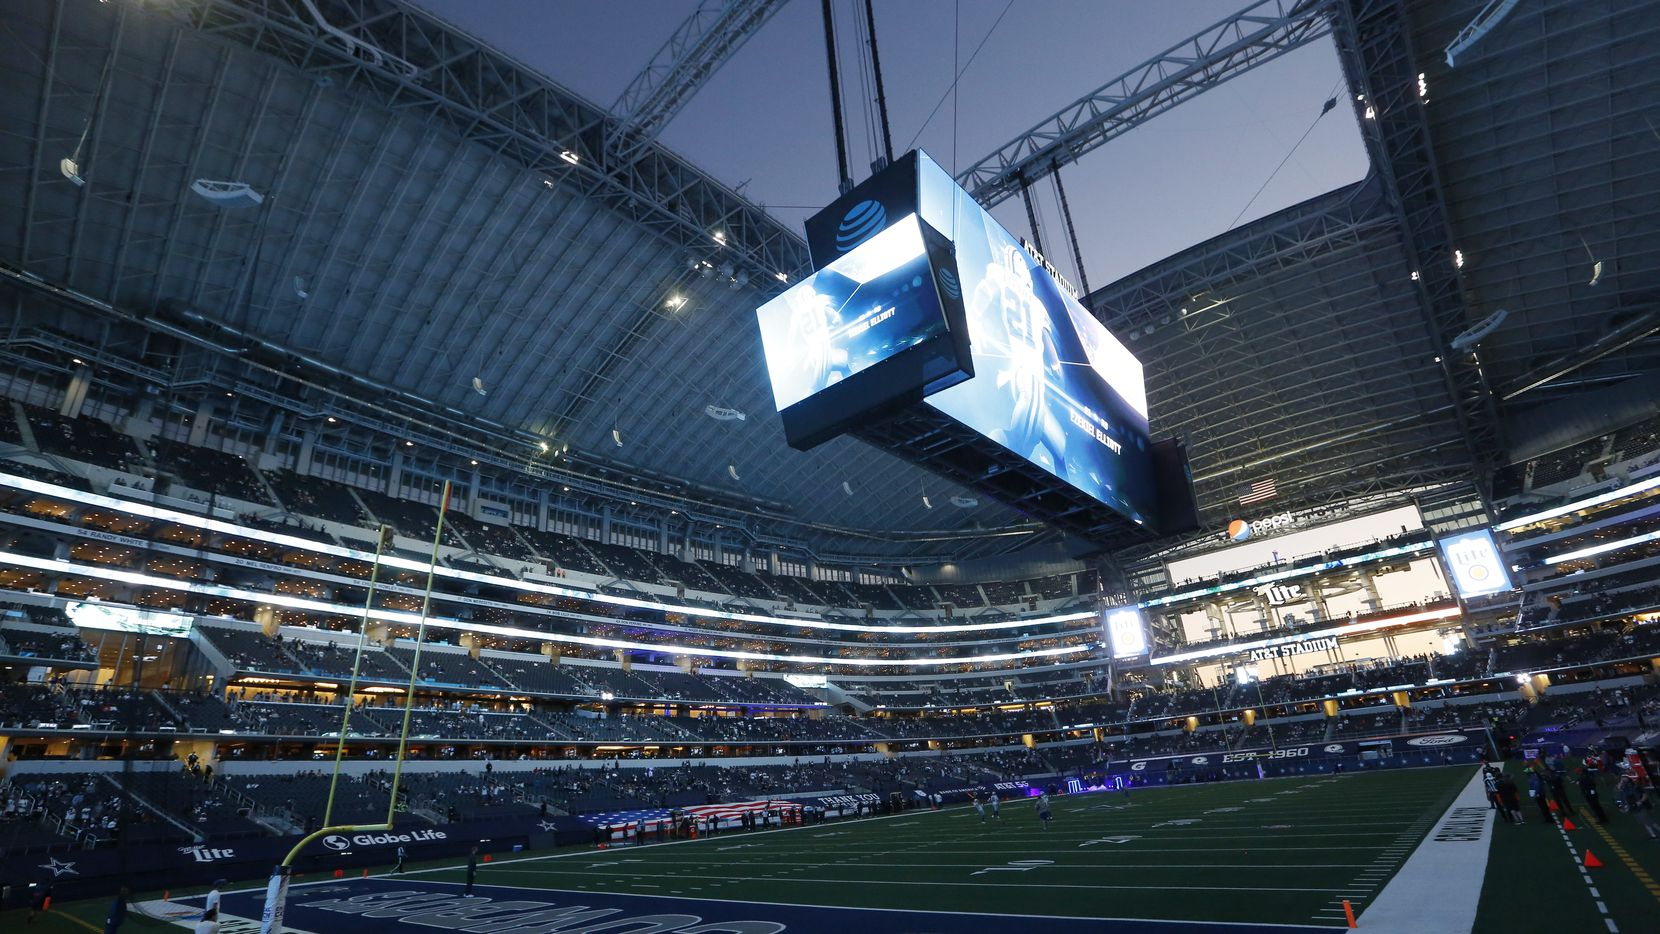 The pregame video plays as the roof is open before a game between the Dallas Cowboys and Arizona Cardinals at AT&T Stadium on Monday, October 19, 2020 in Arlington, Texas. The Dallas Cowboys lost to the Arizona Cardinals 38-10.